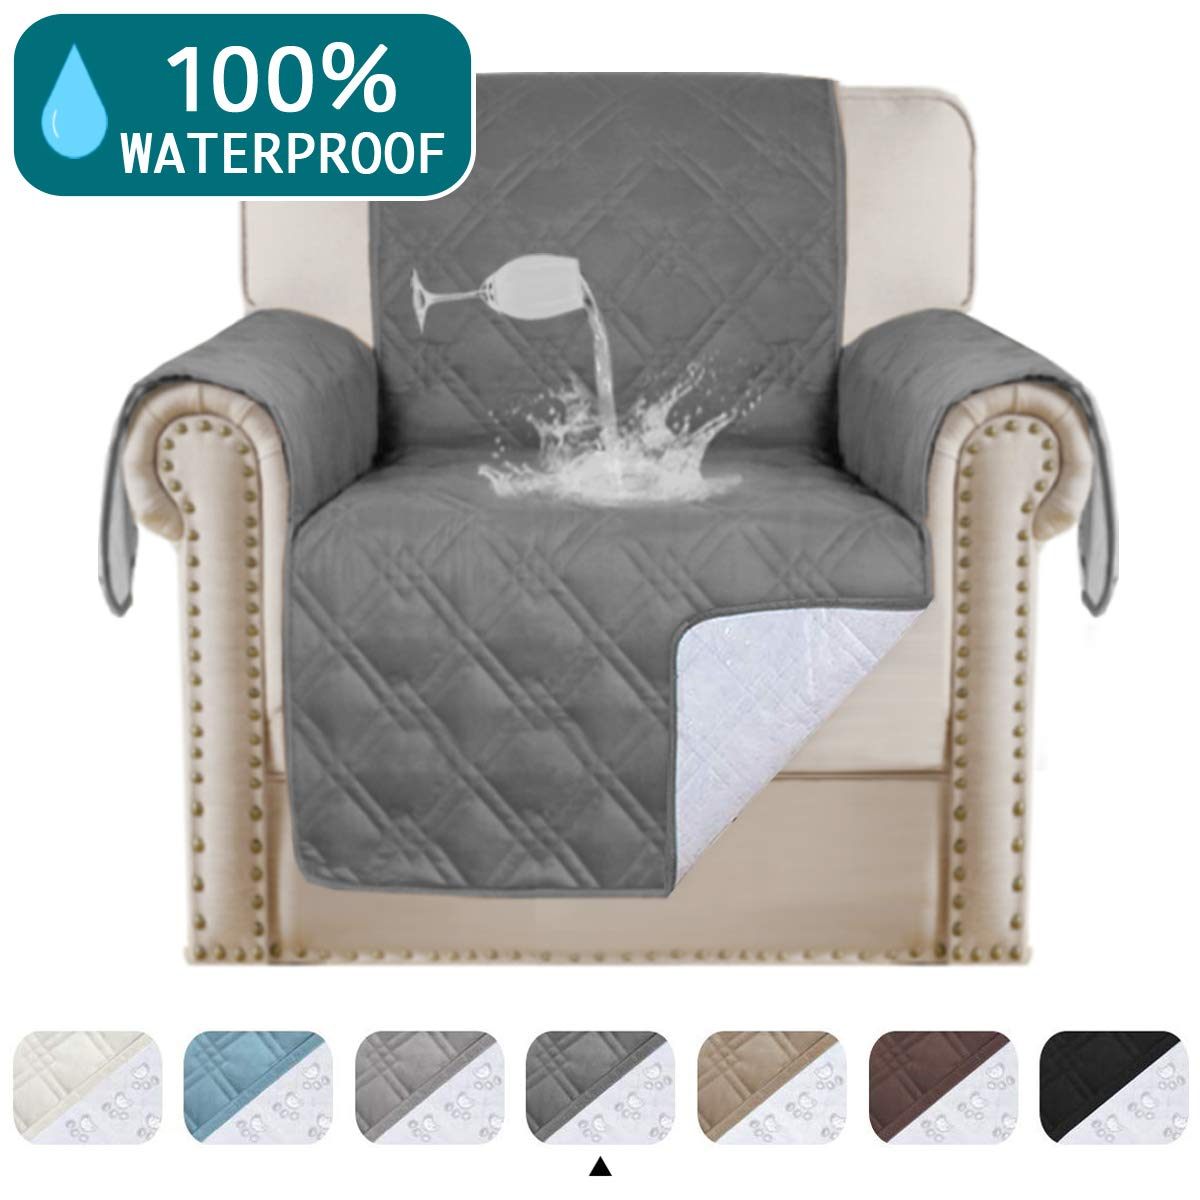 Waterproof Sofa Cover Leather Couch Protector Furniture Covers for Living Room Non-Slip Couch Covers for Dogs Soft and…